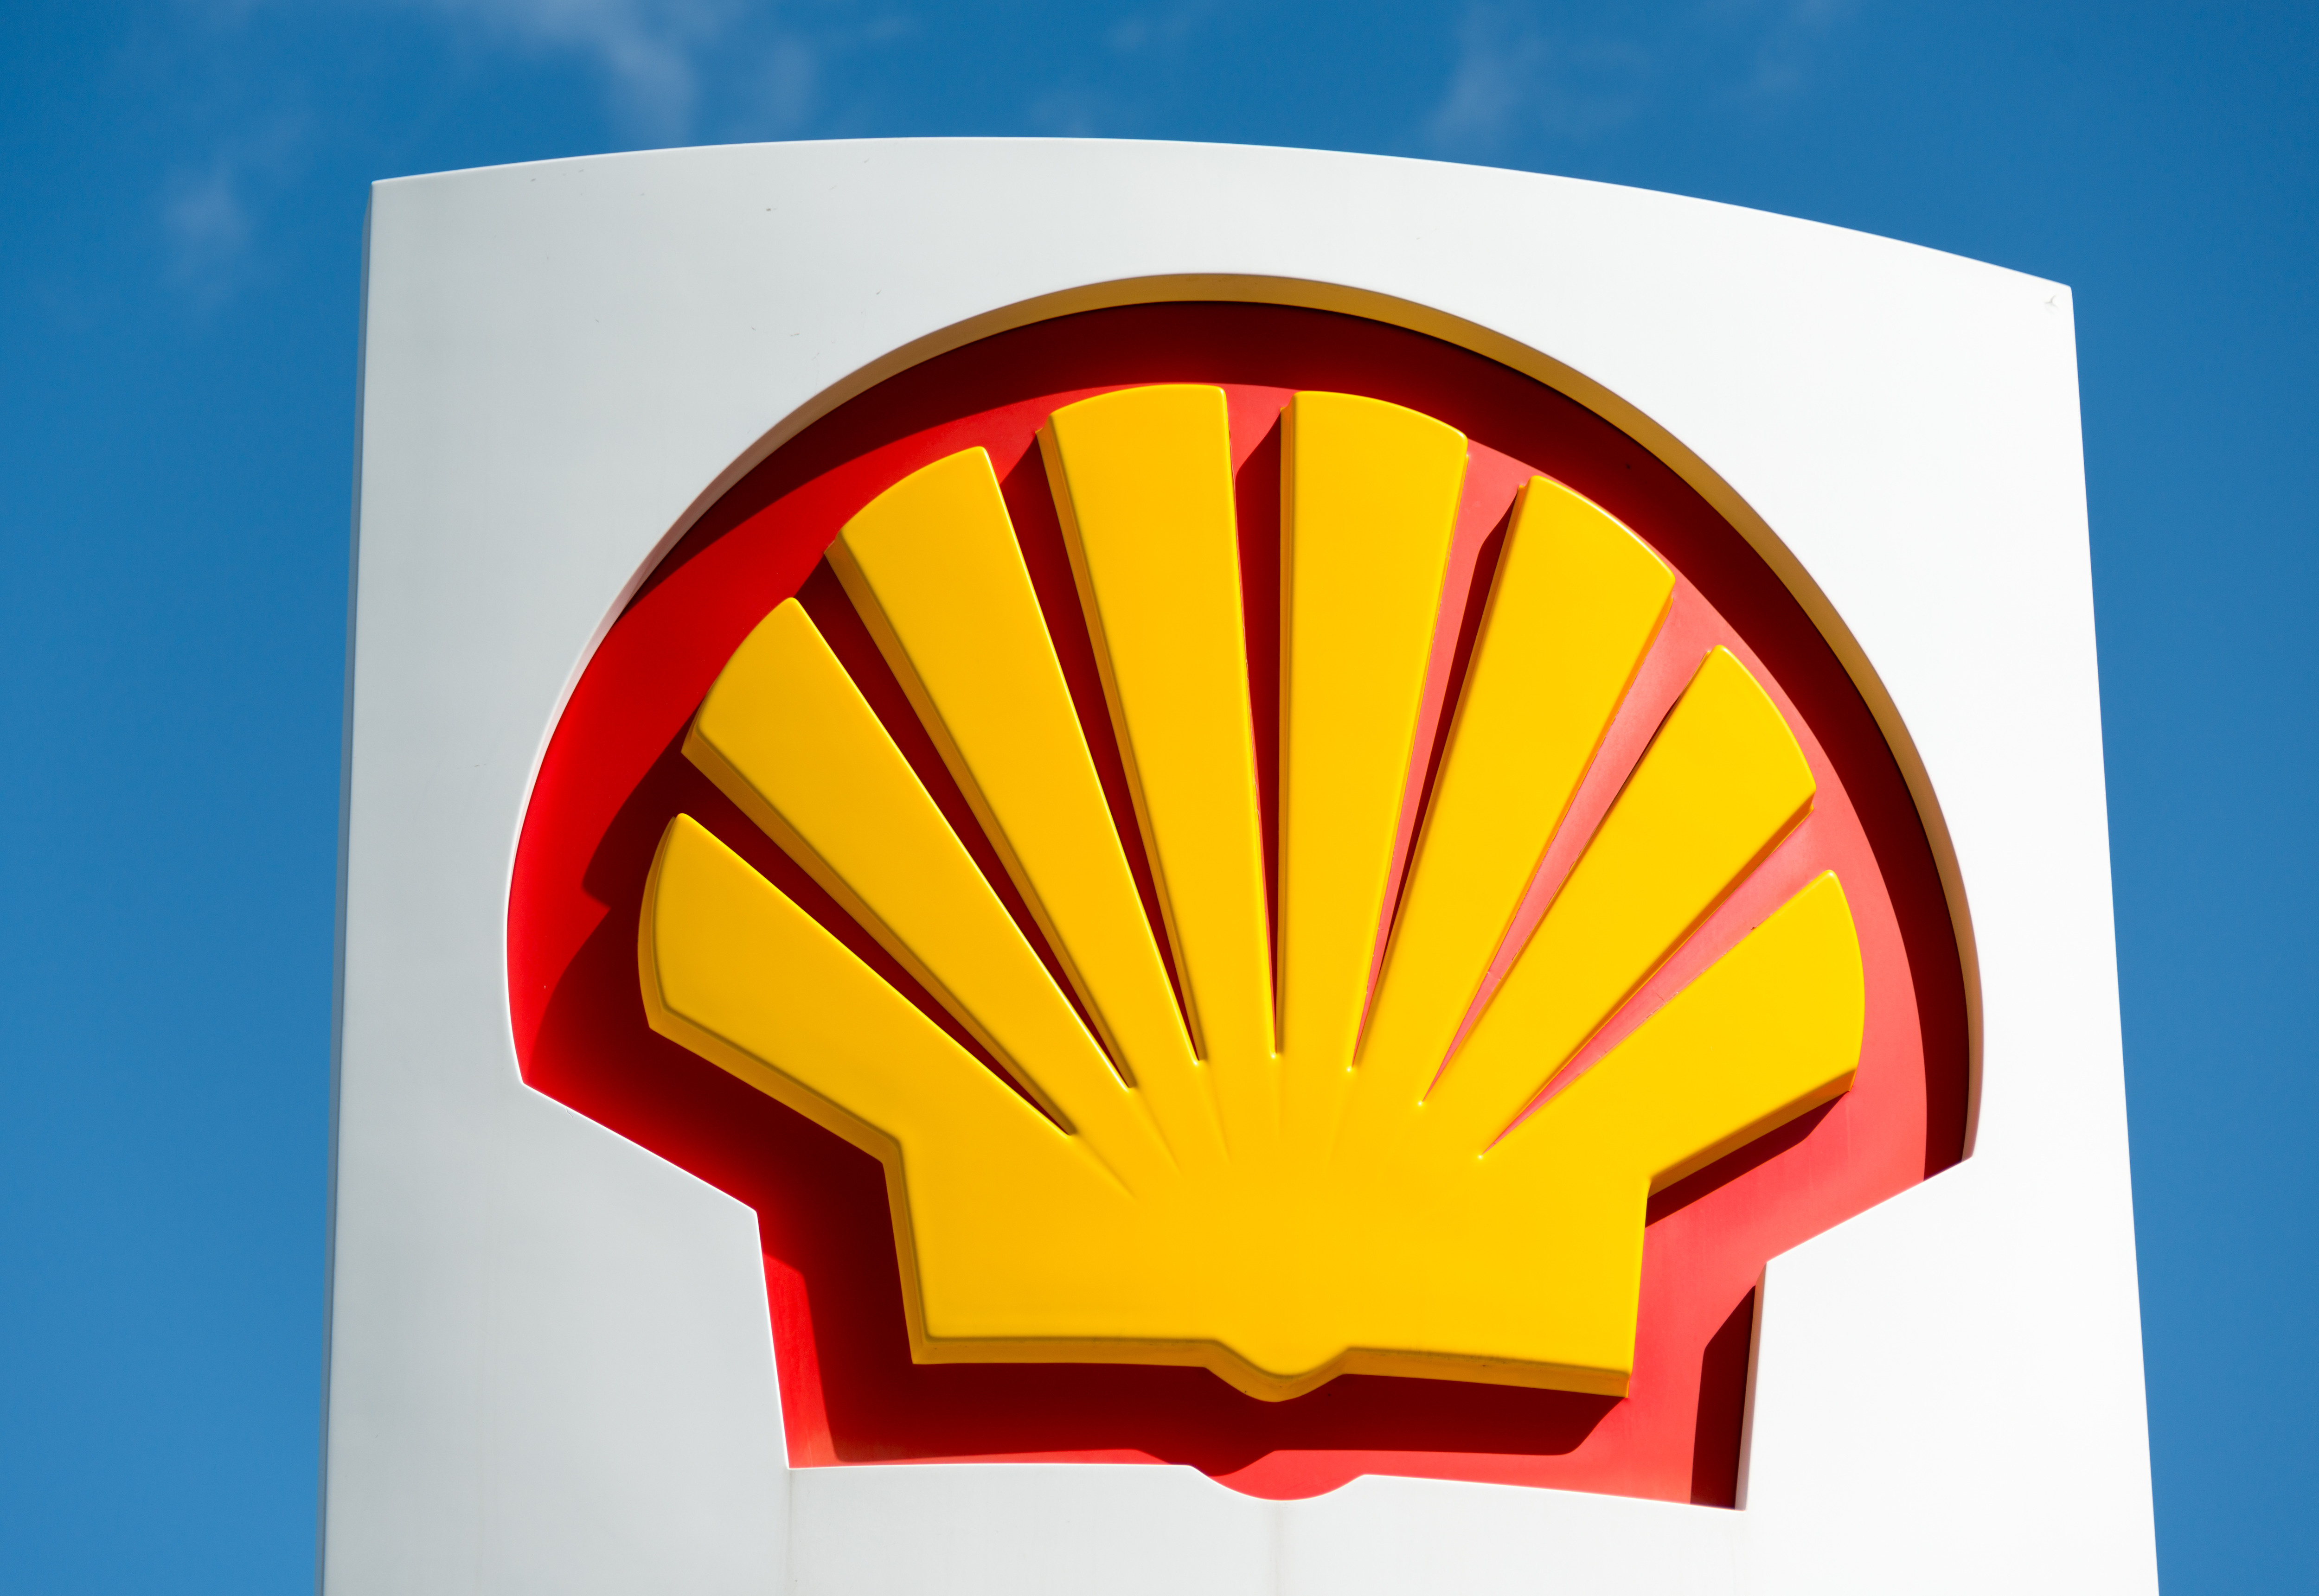 Icon of company Shell over blue sky: Shell Oil Company is